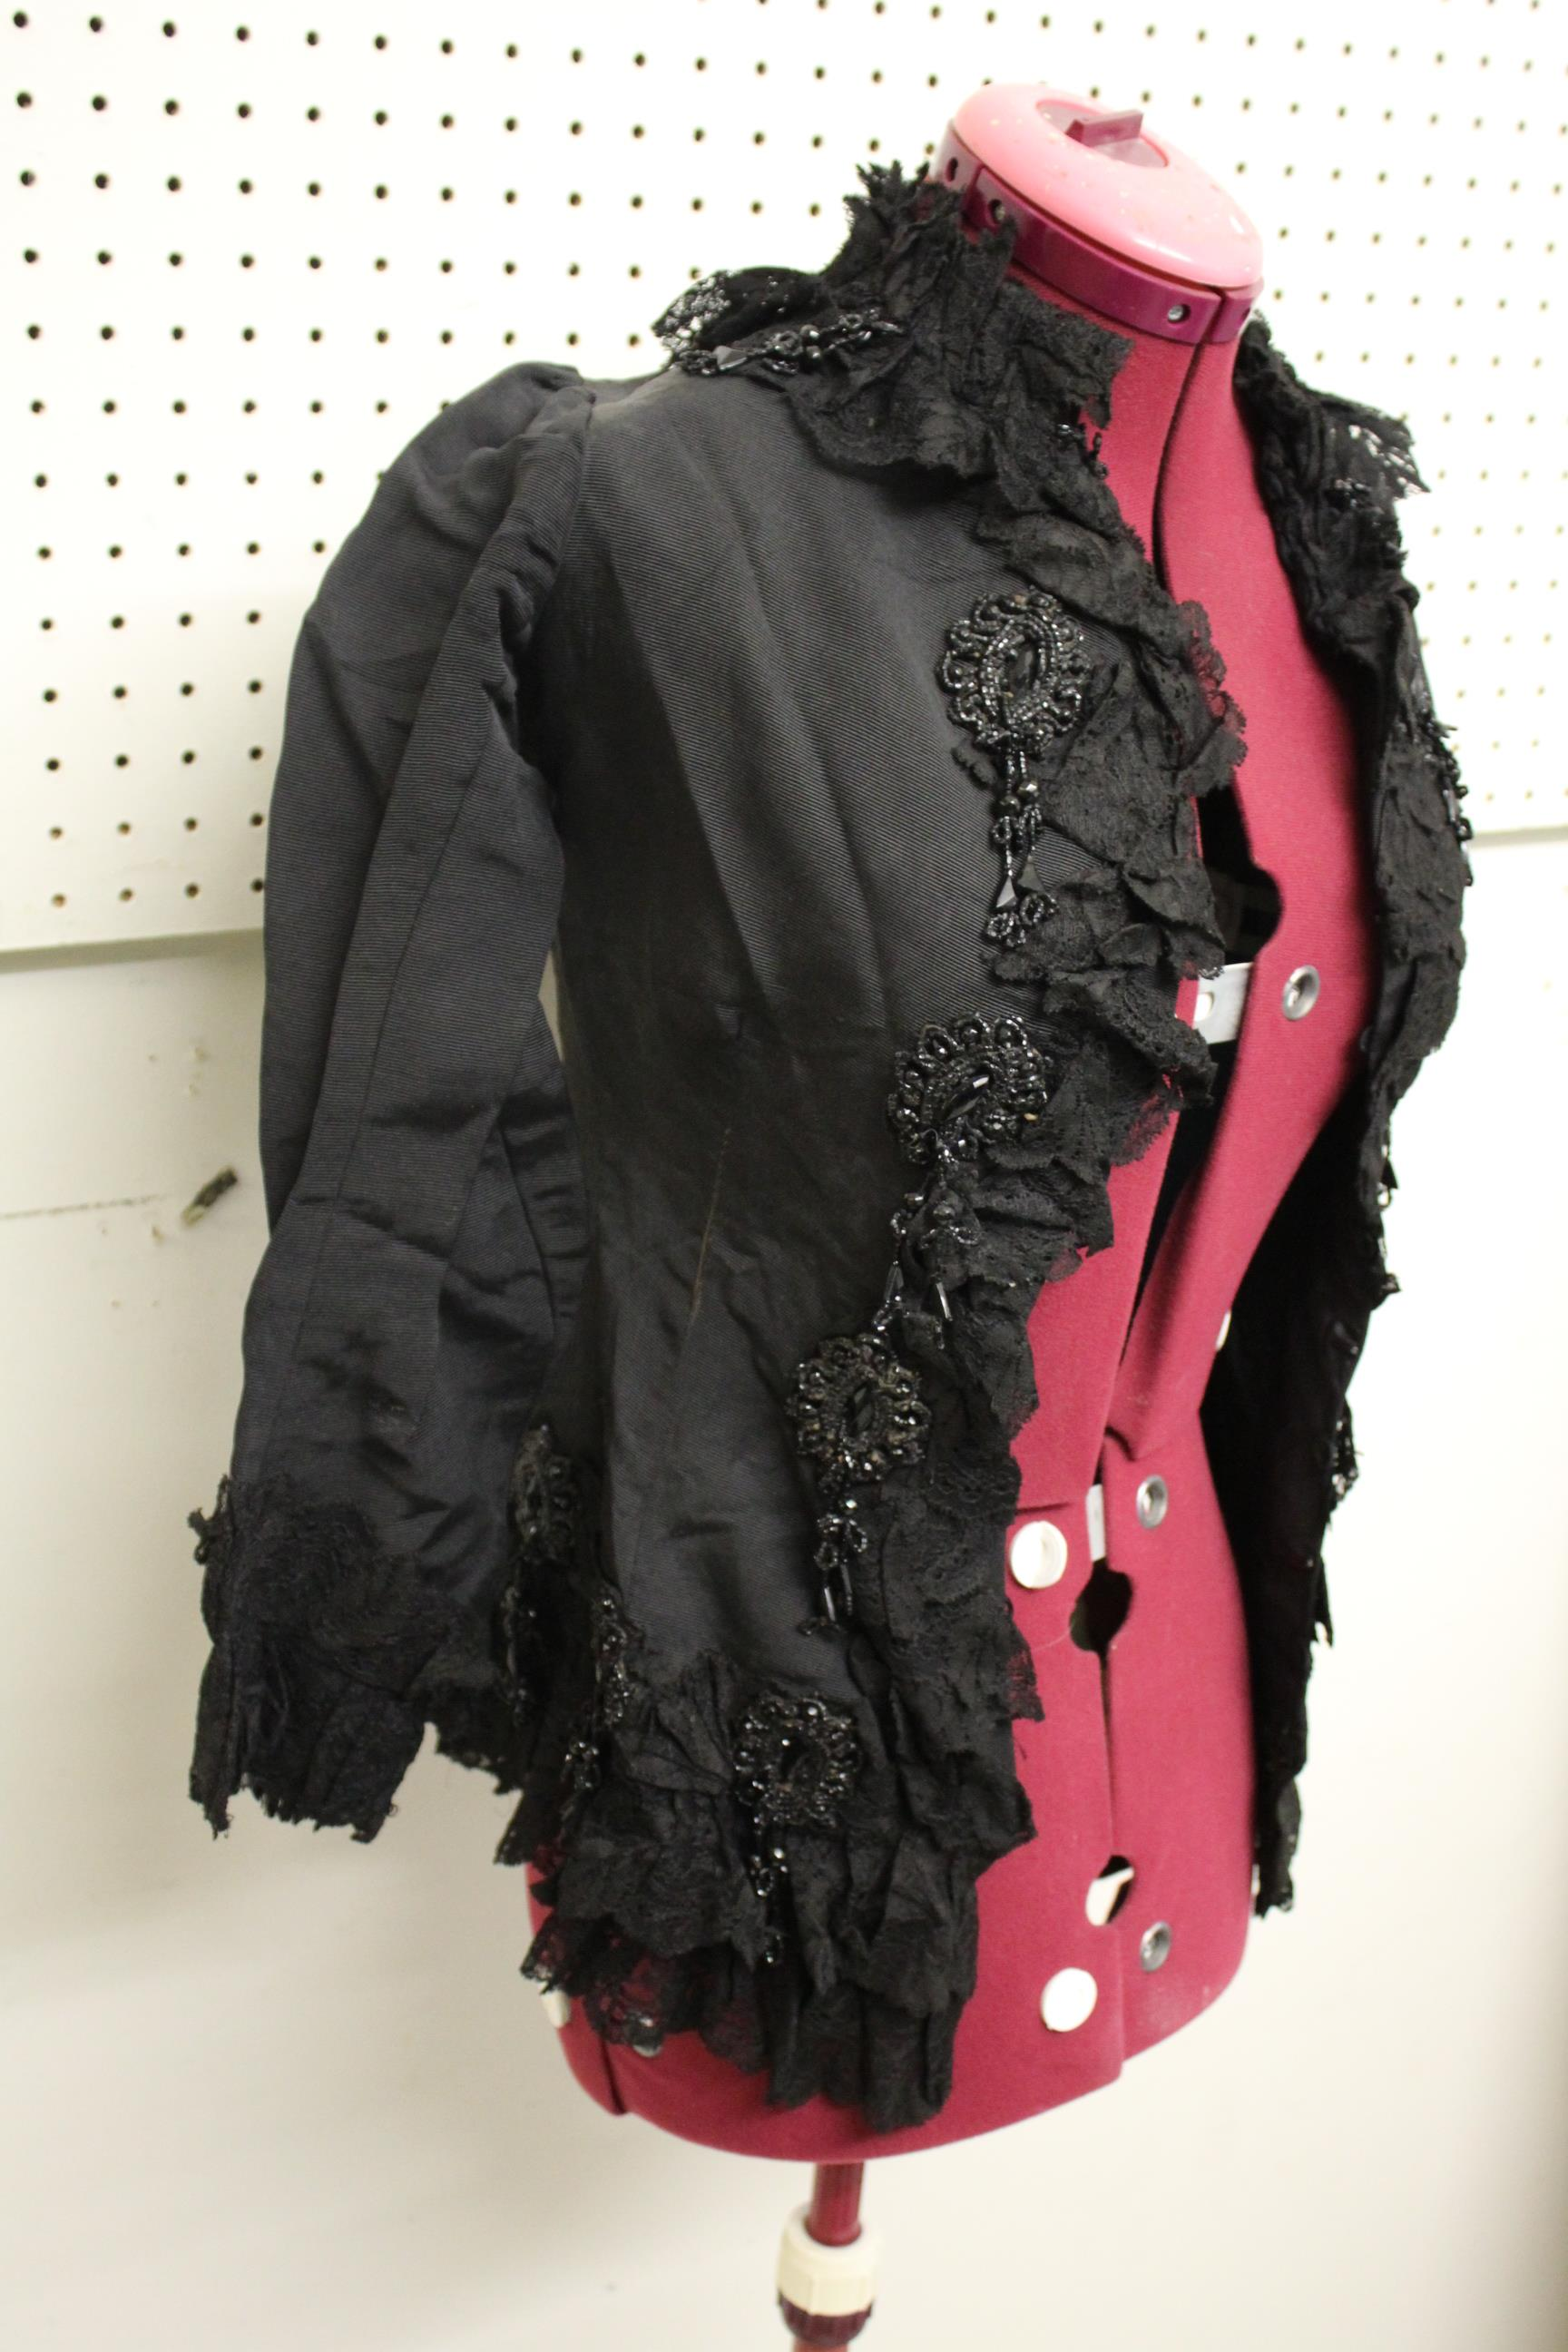 Lot 1880 - 19THC JACKET a black grosgrain jacket embellished with lace and bead embroidered motifs, by Cole